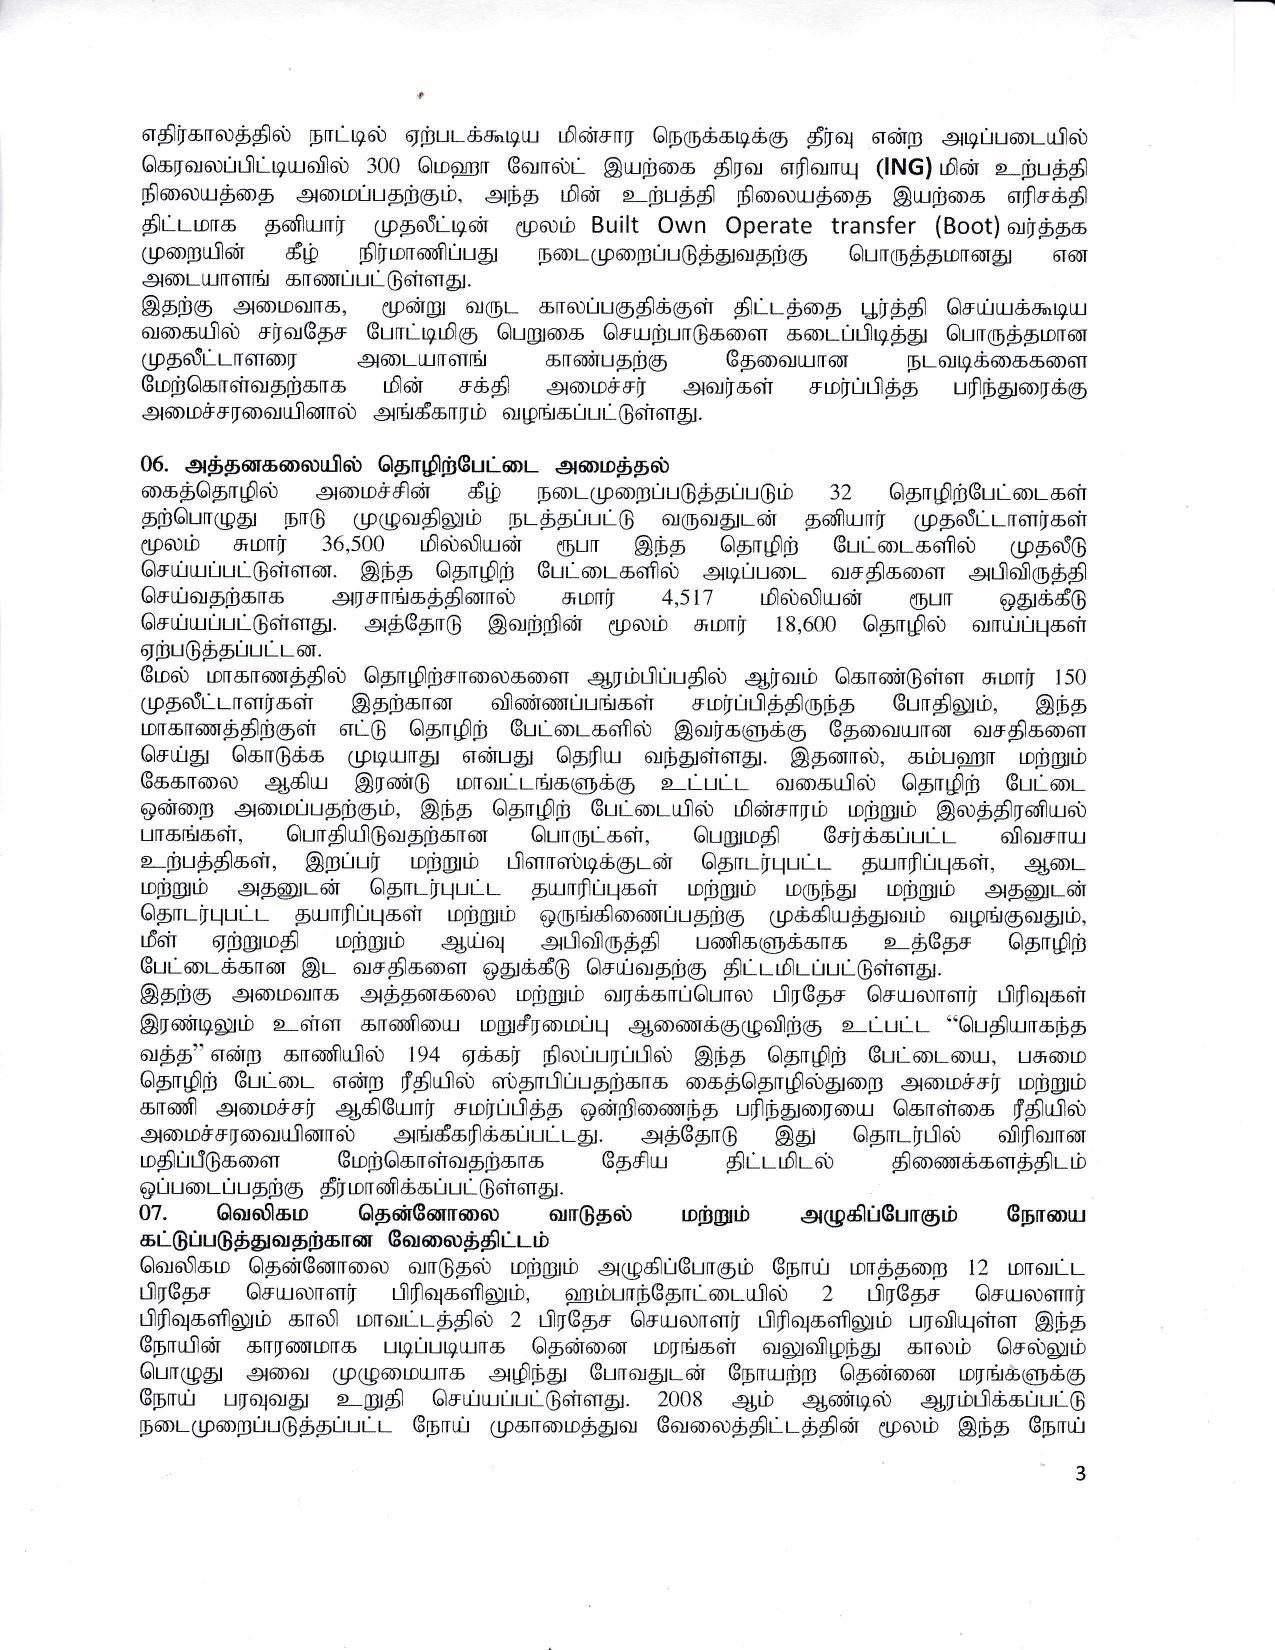 Cabinet Decision on 16.09.2020 0 Tamil 1 page 003